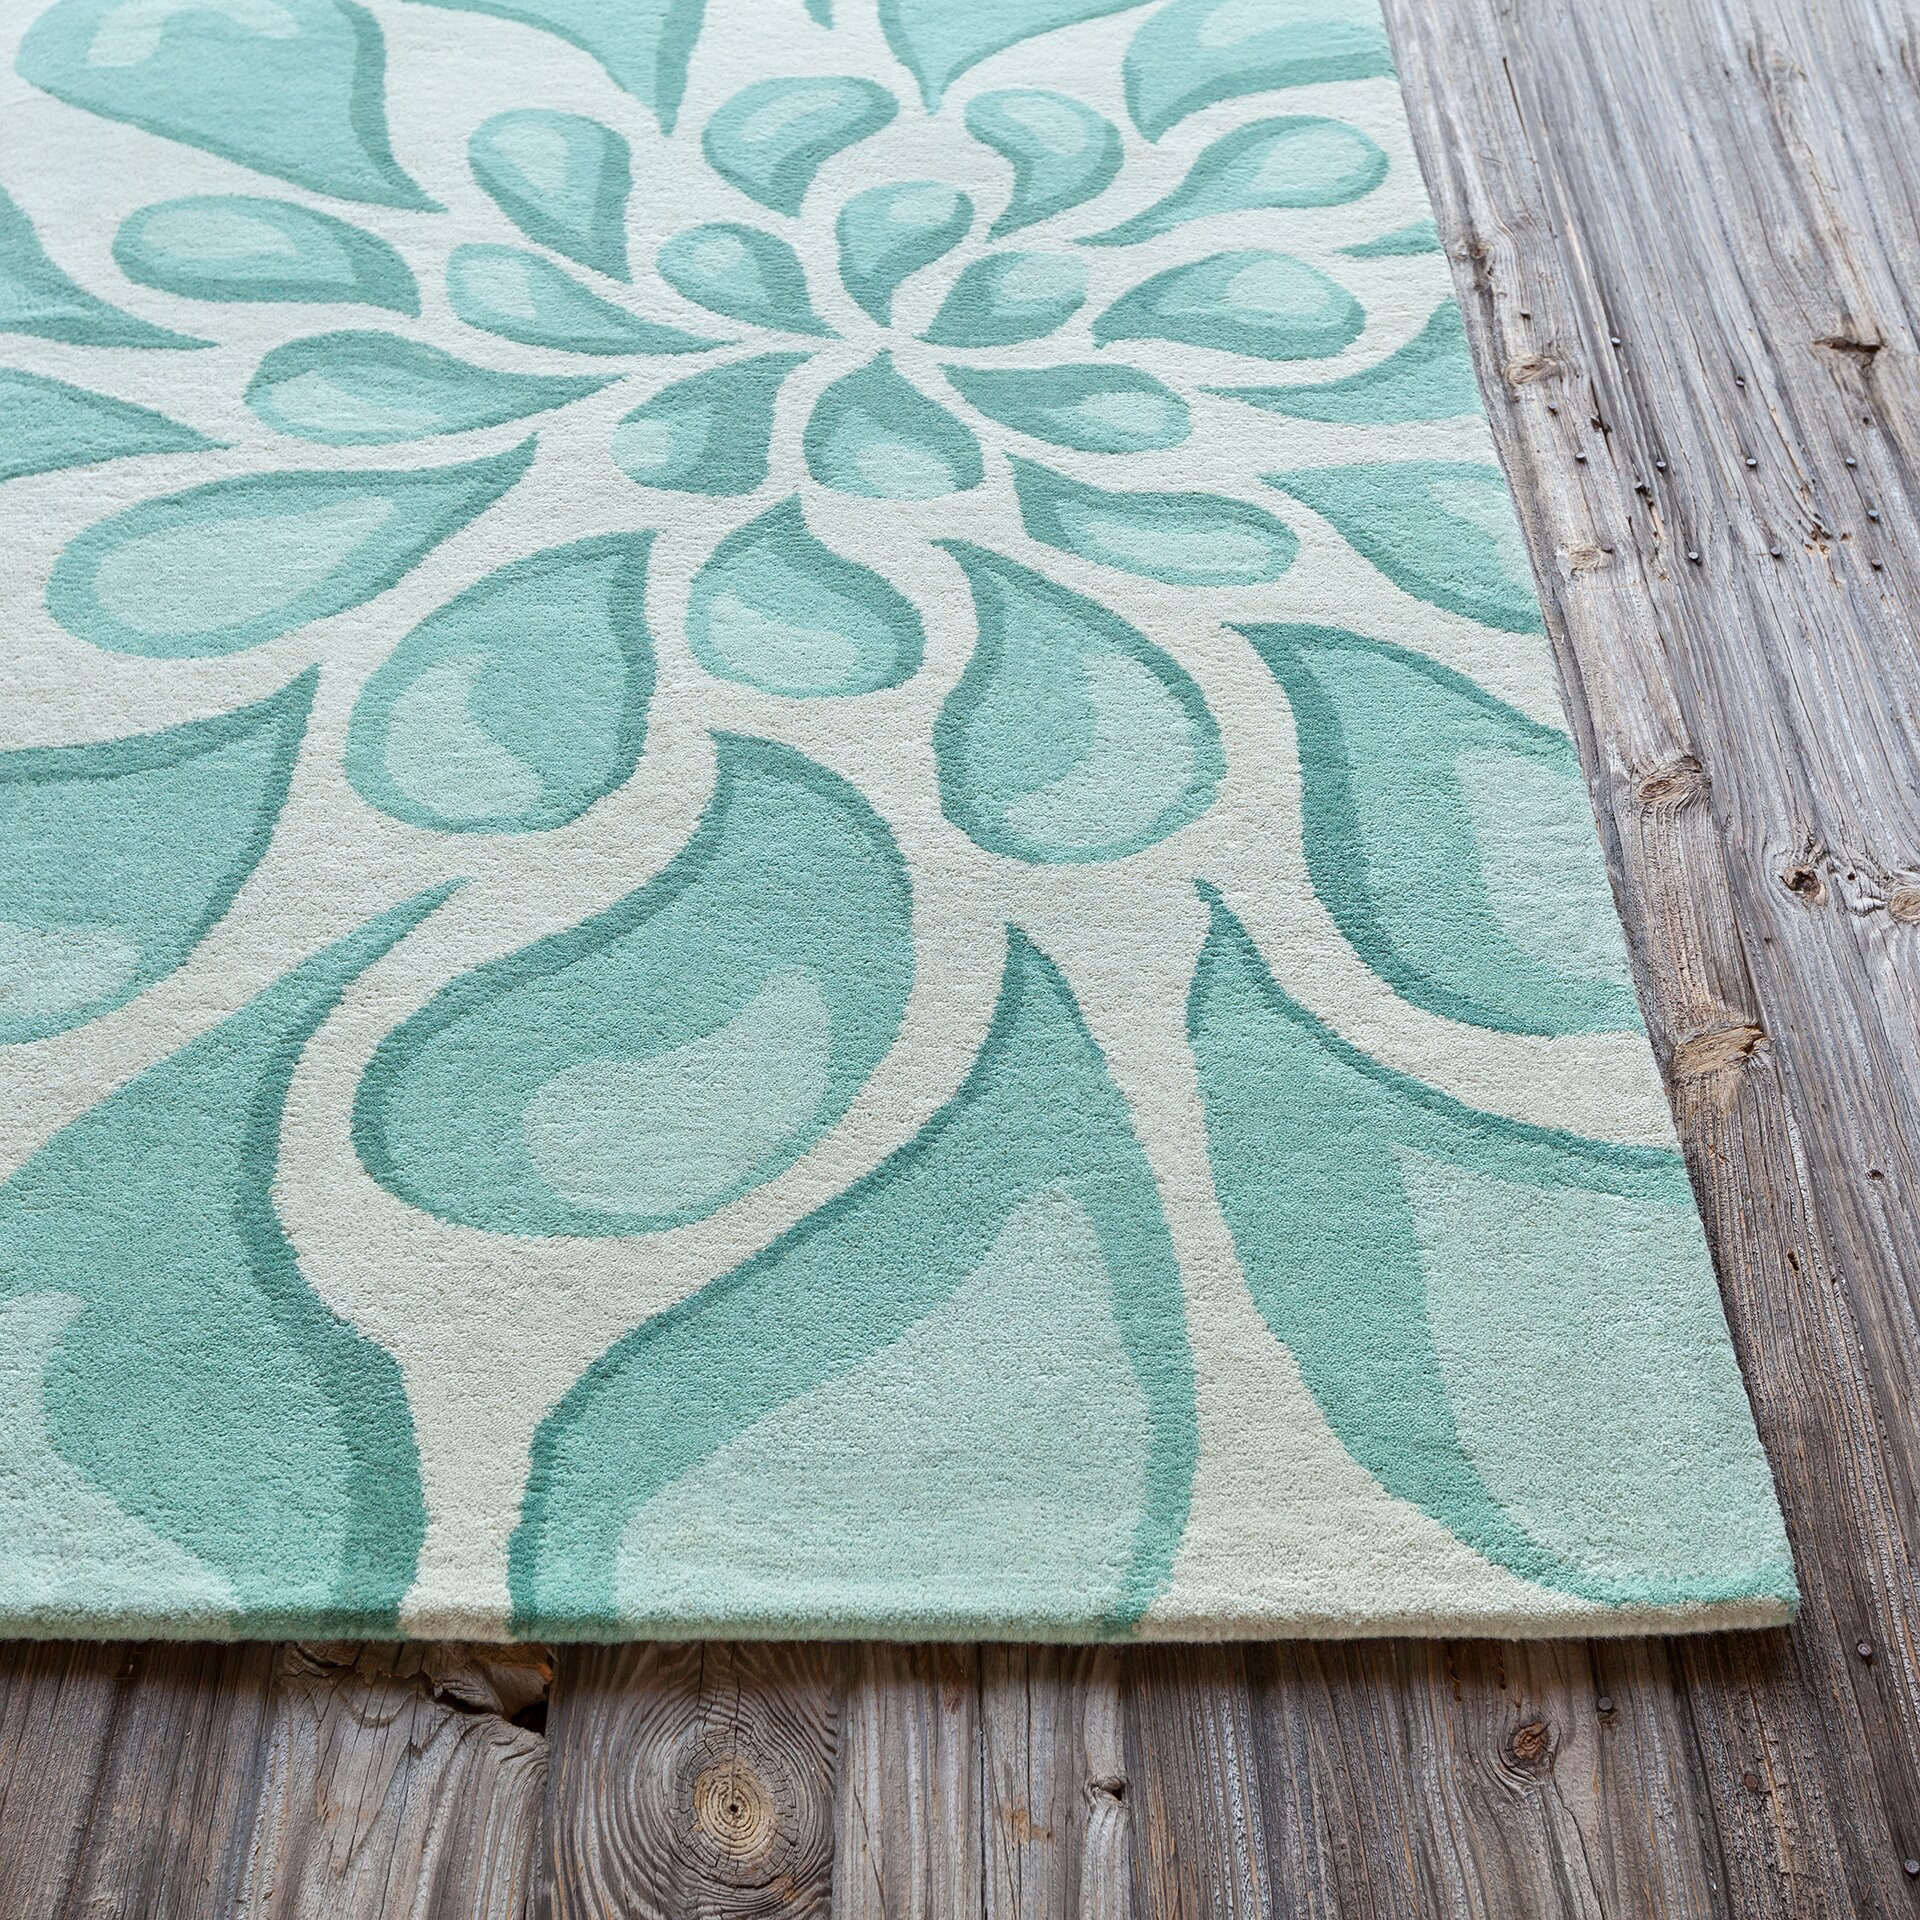 Rugs Aqua Home Decor